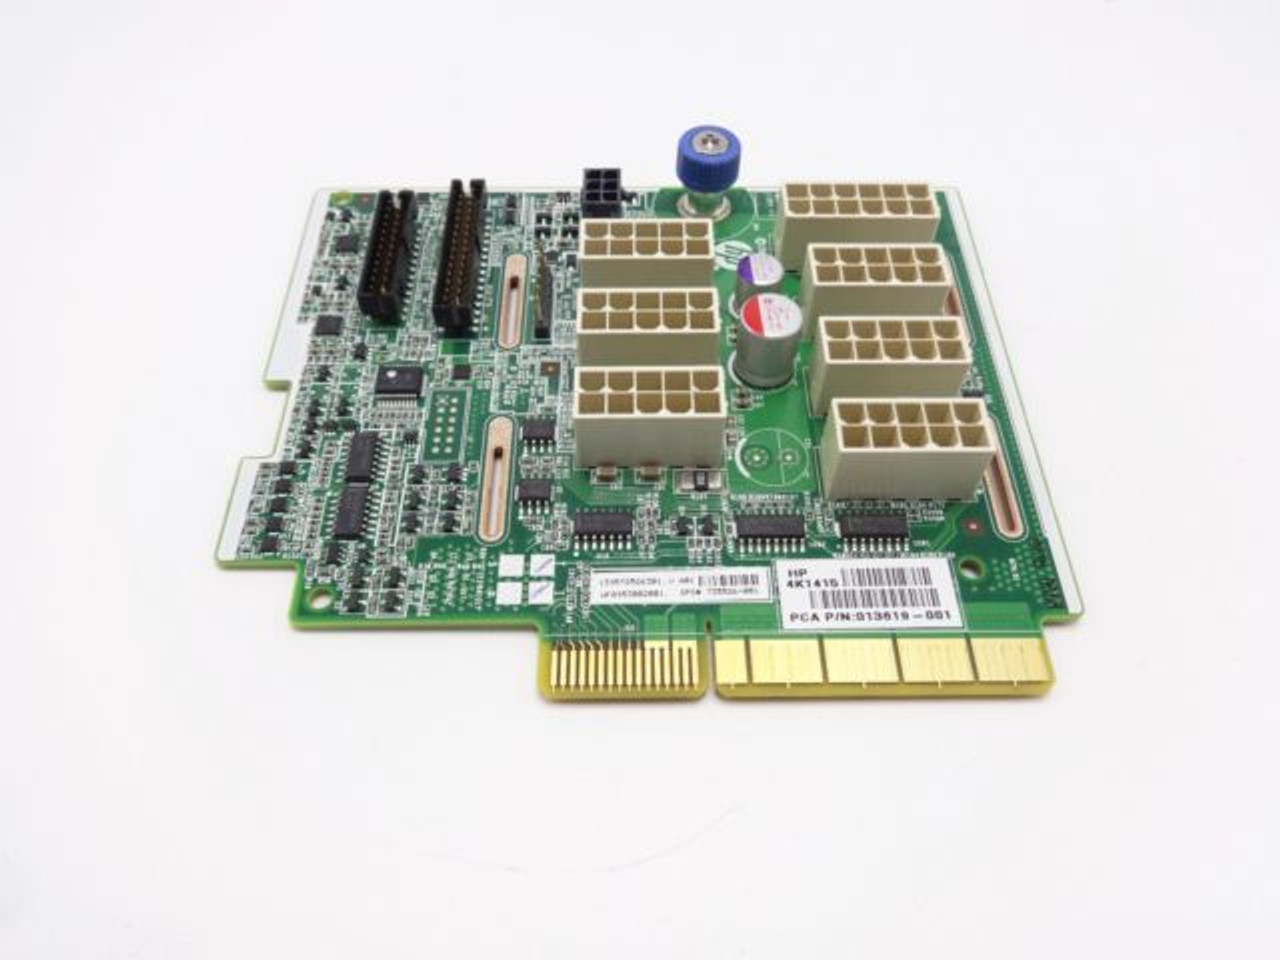 HP DL580 G8 POWER SUPPLY BACKPLANE (735526-001) - Avanti